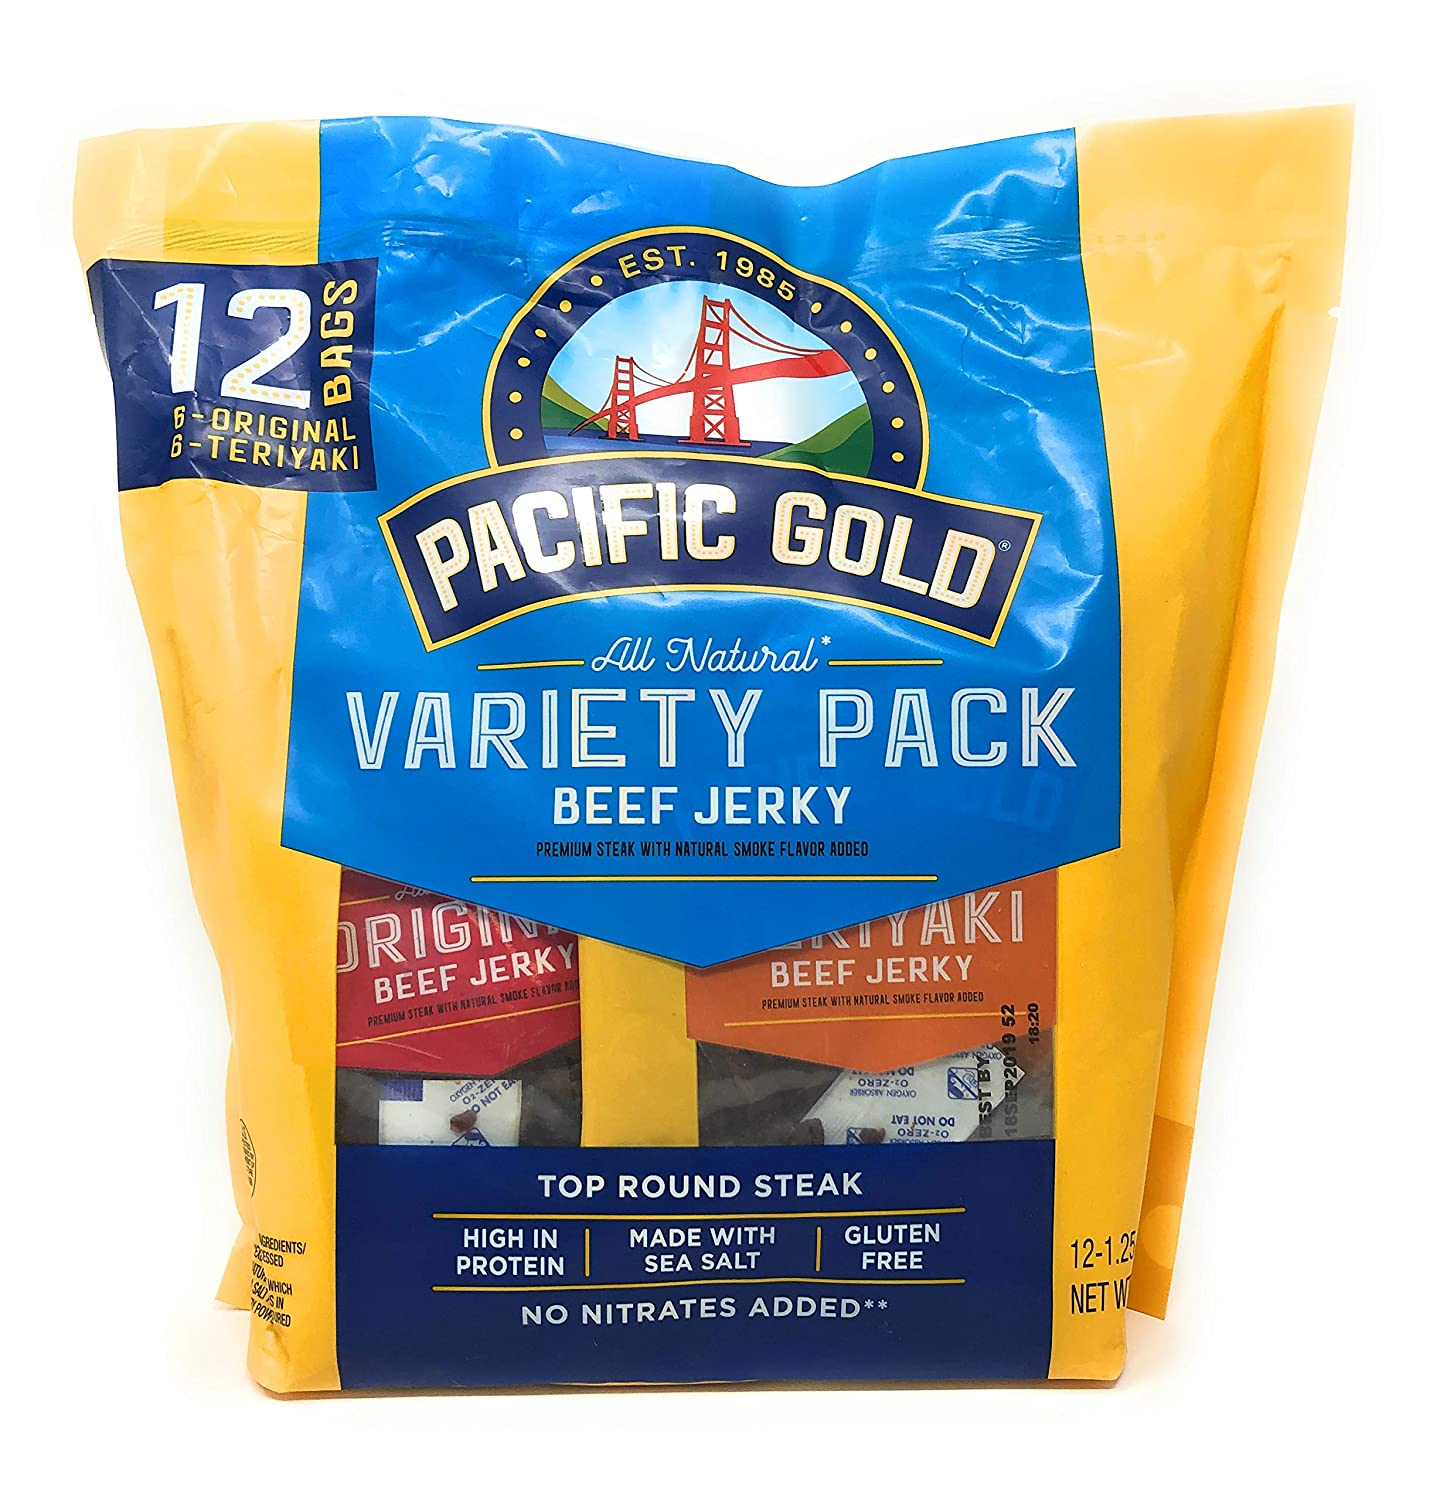 Pacific Gold safety Beef Jerky Original Teriyaki Count Bag 2 Per New York Mall 12